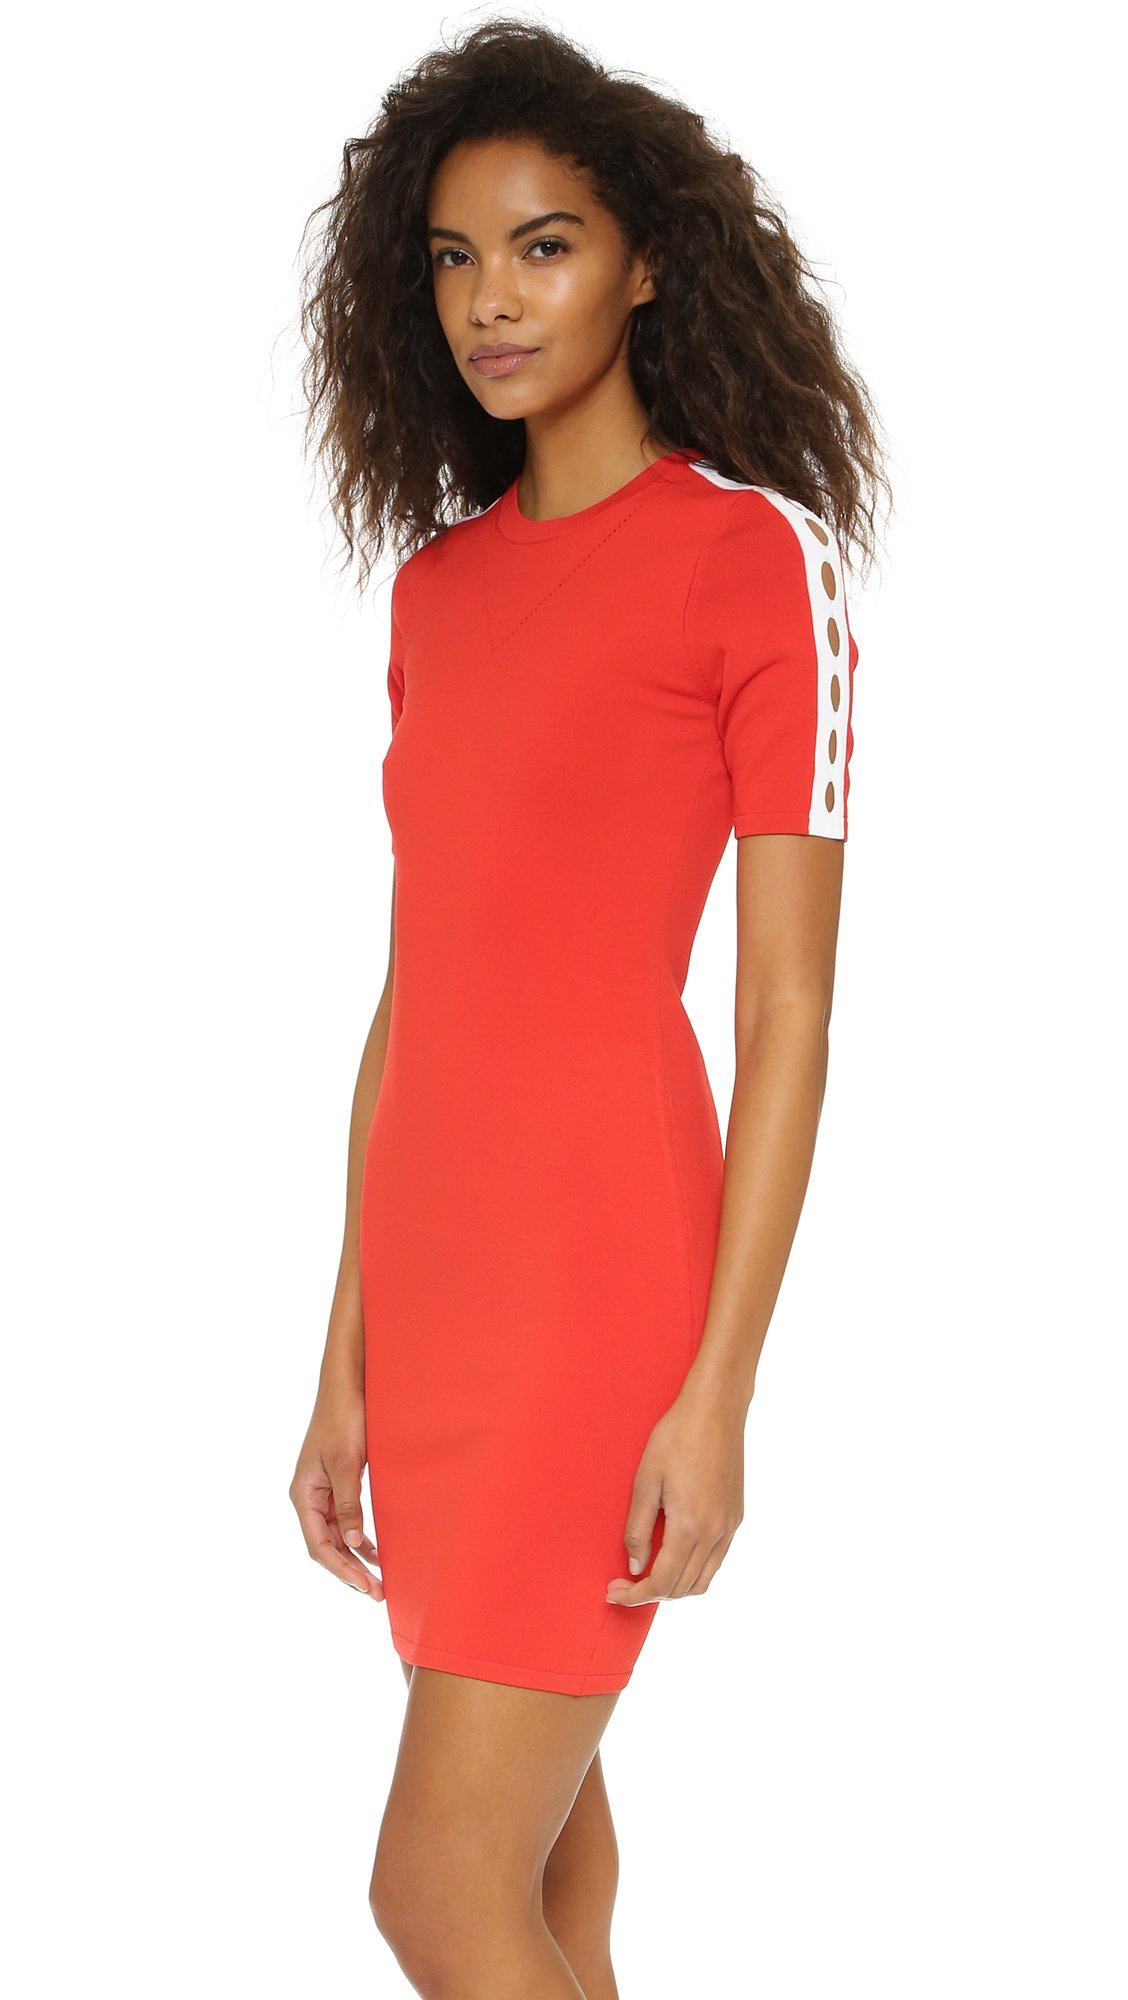 Opening ceremony Cutout Short Sleeve Dress in Red - Lyst